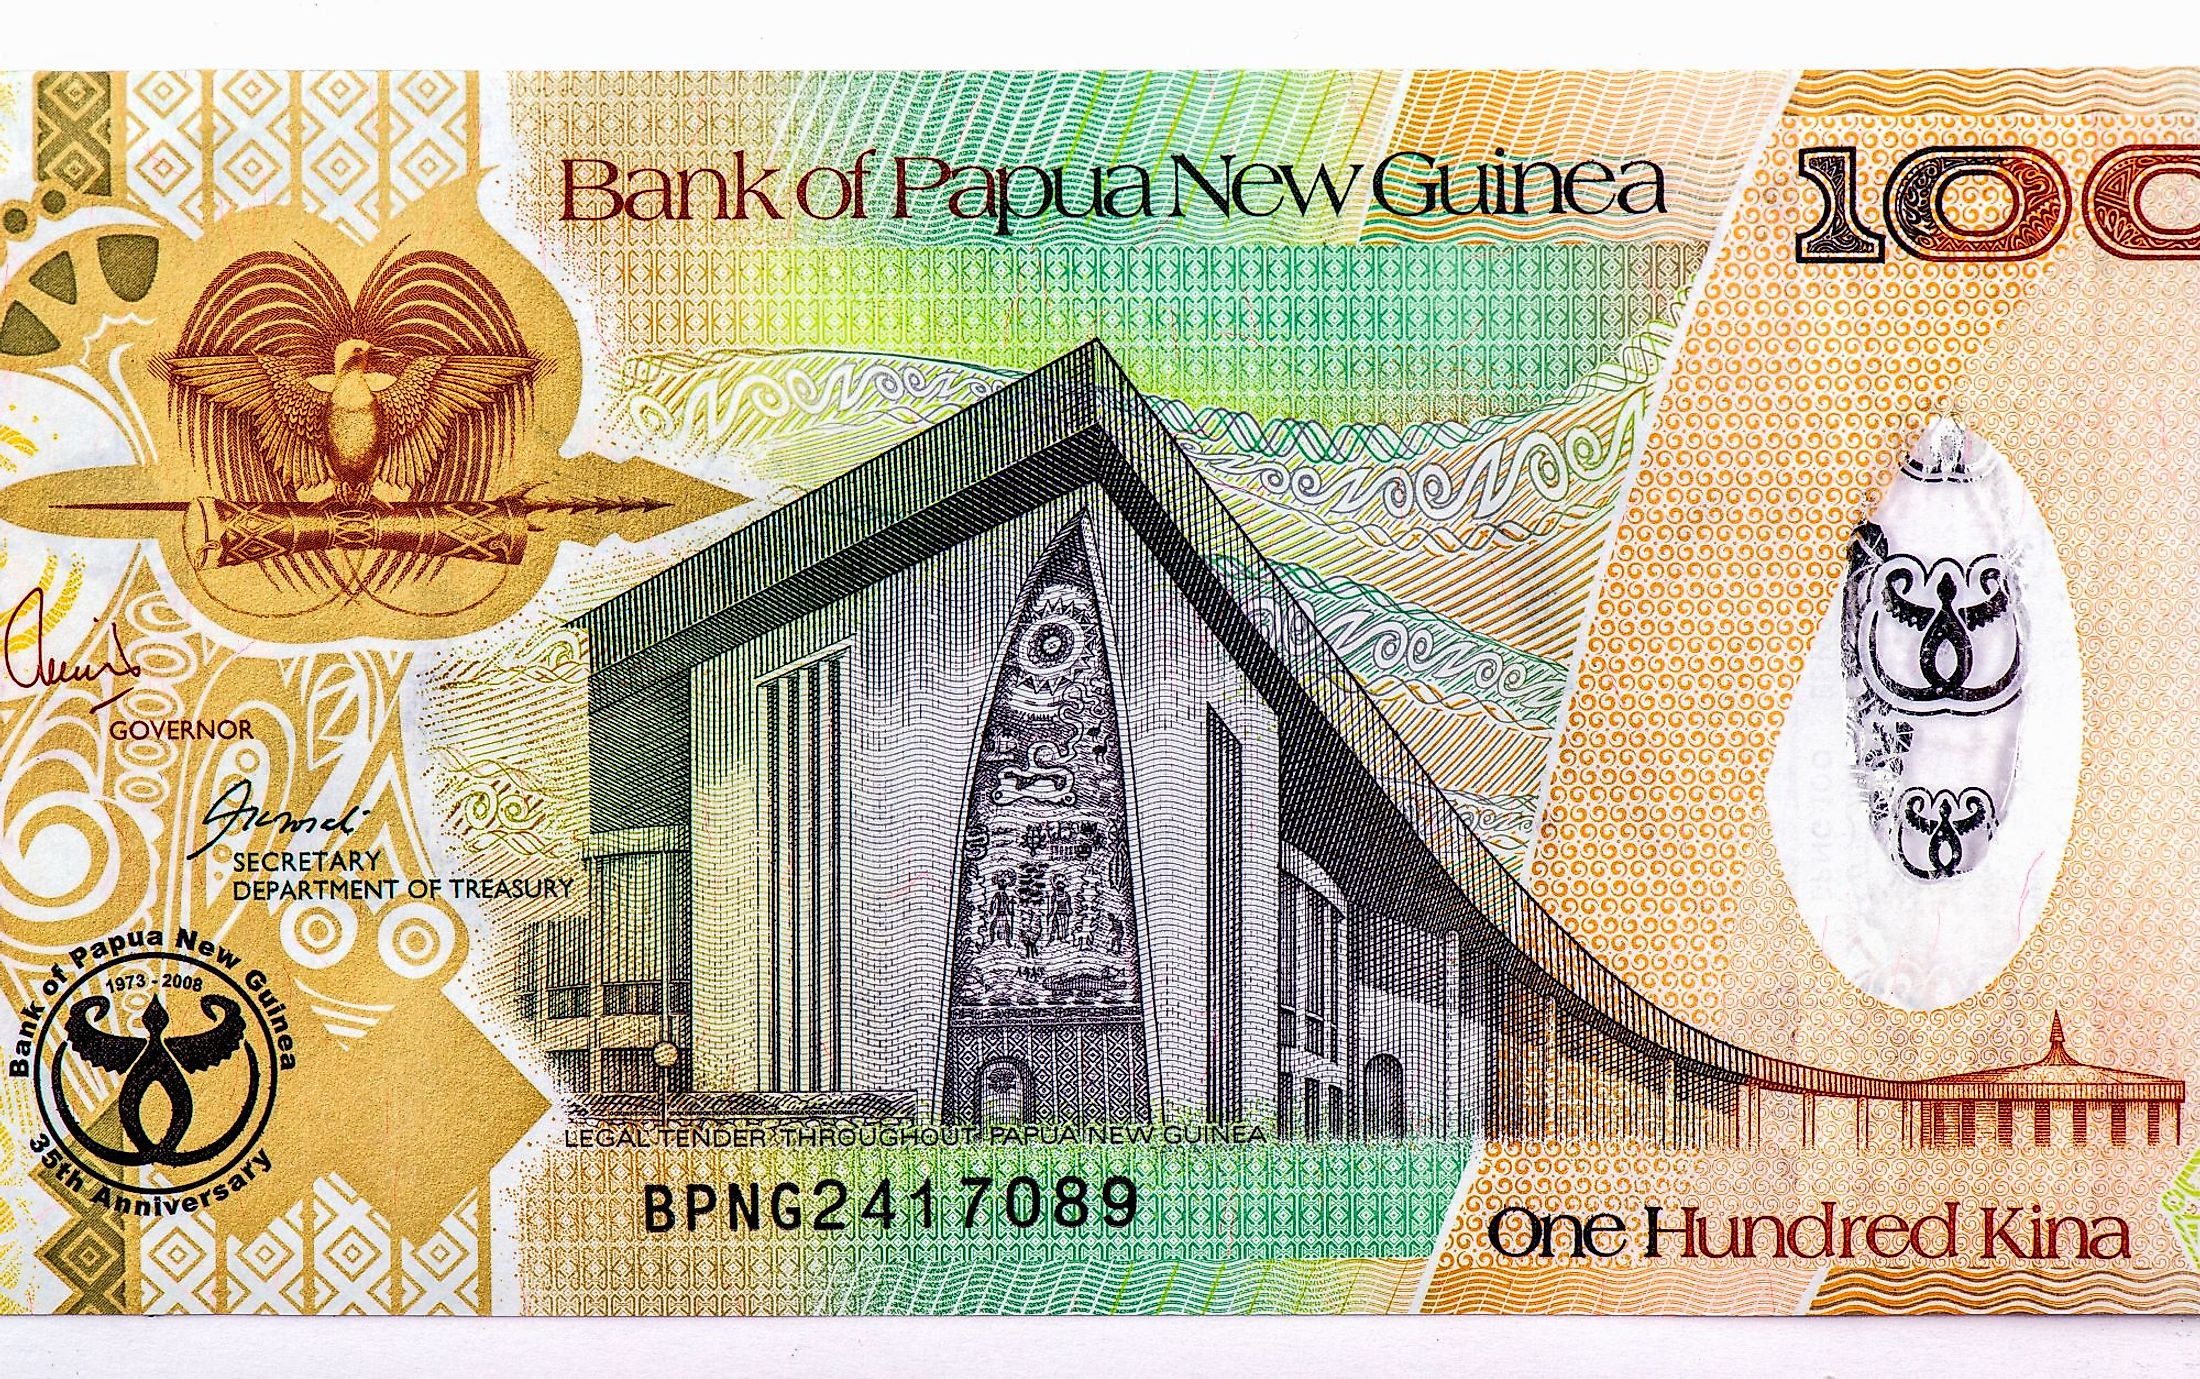 A banknote of Papua New Guinea's currency.